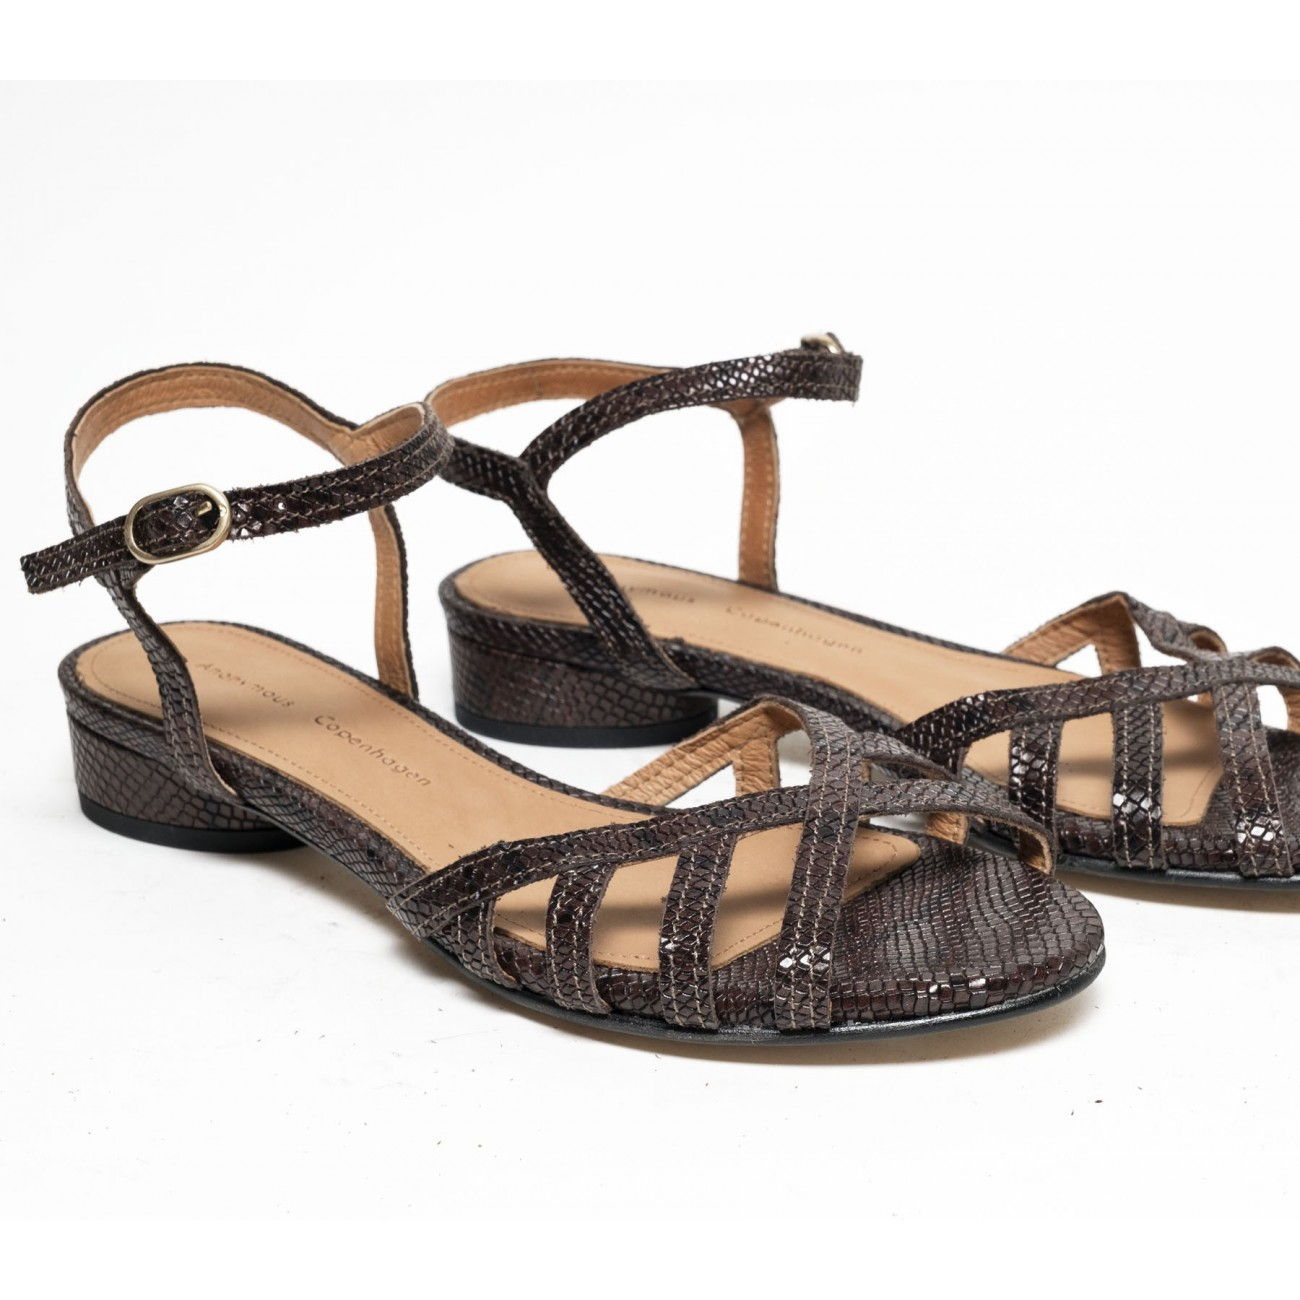 Issi 20 Snake calf Brown - Size 38